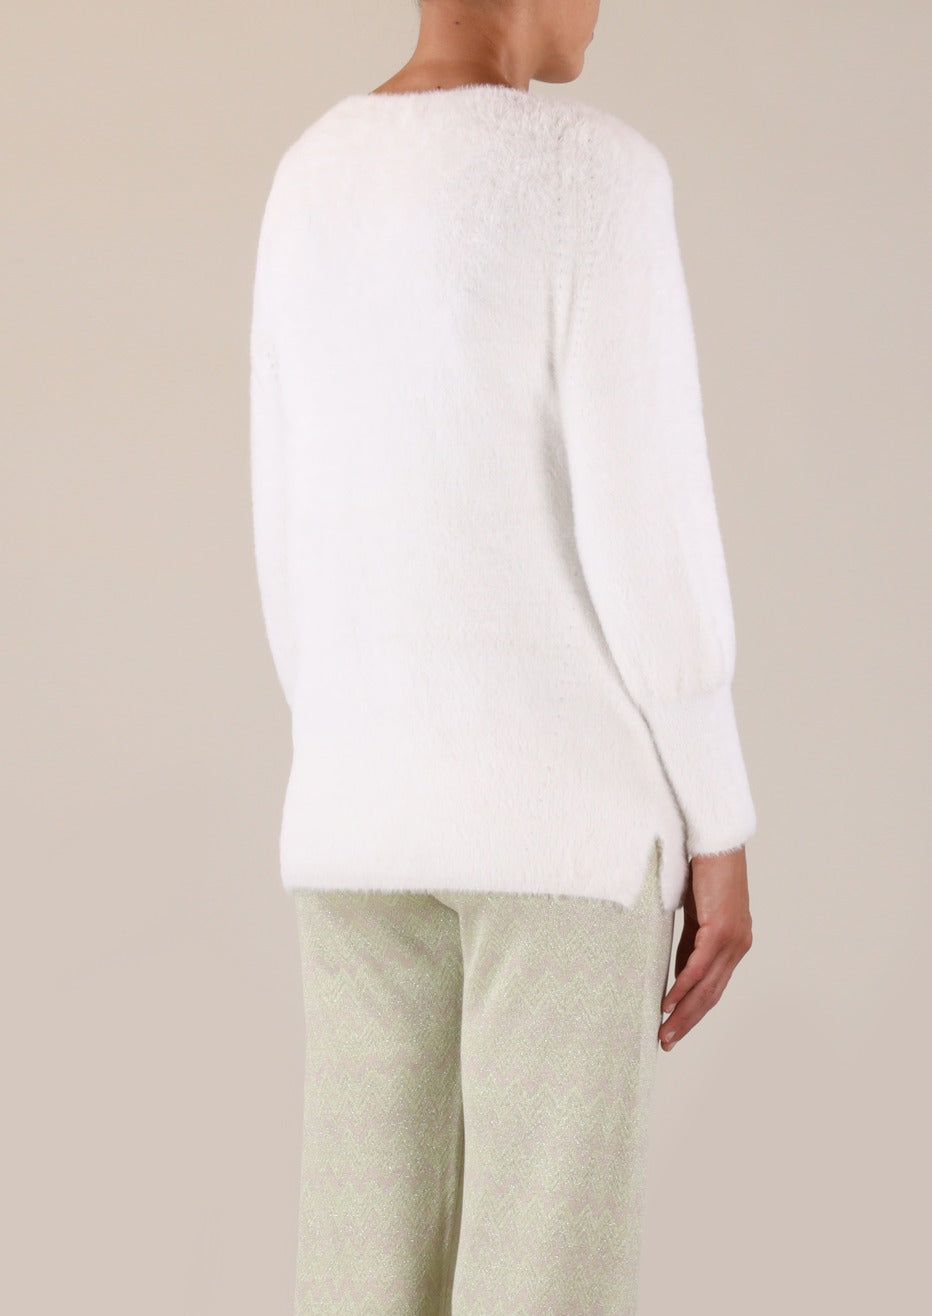 Rino & Pelle Maddie Knitted V-Neck Sweater - Snow White